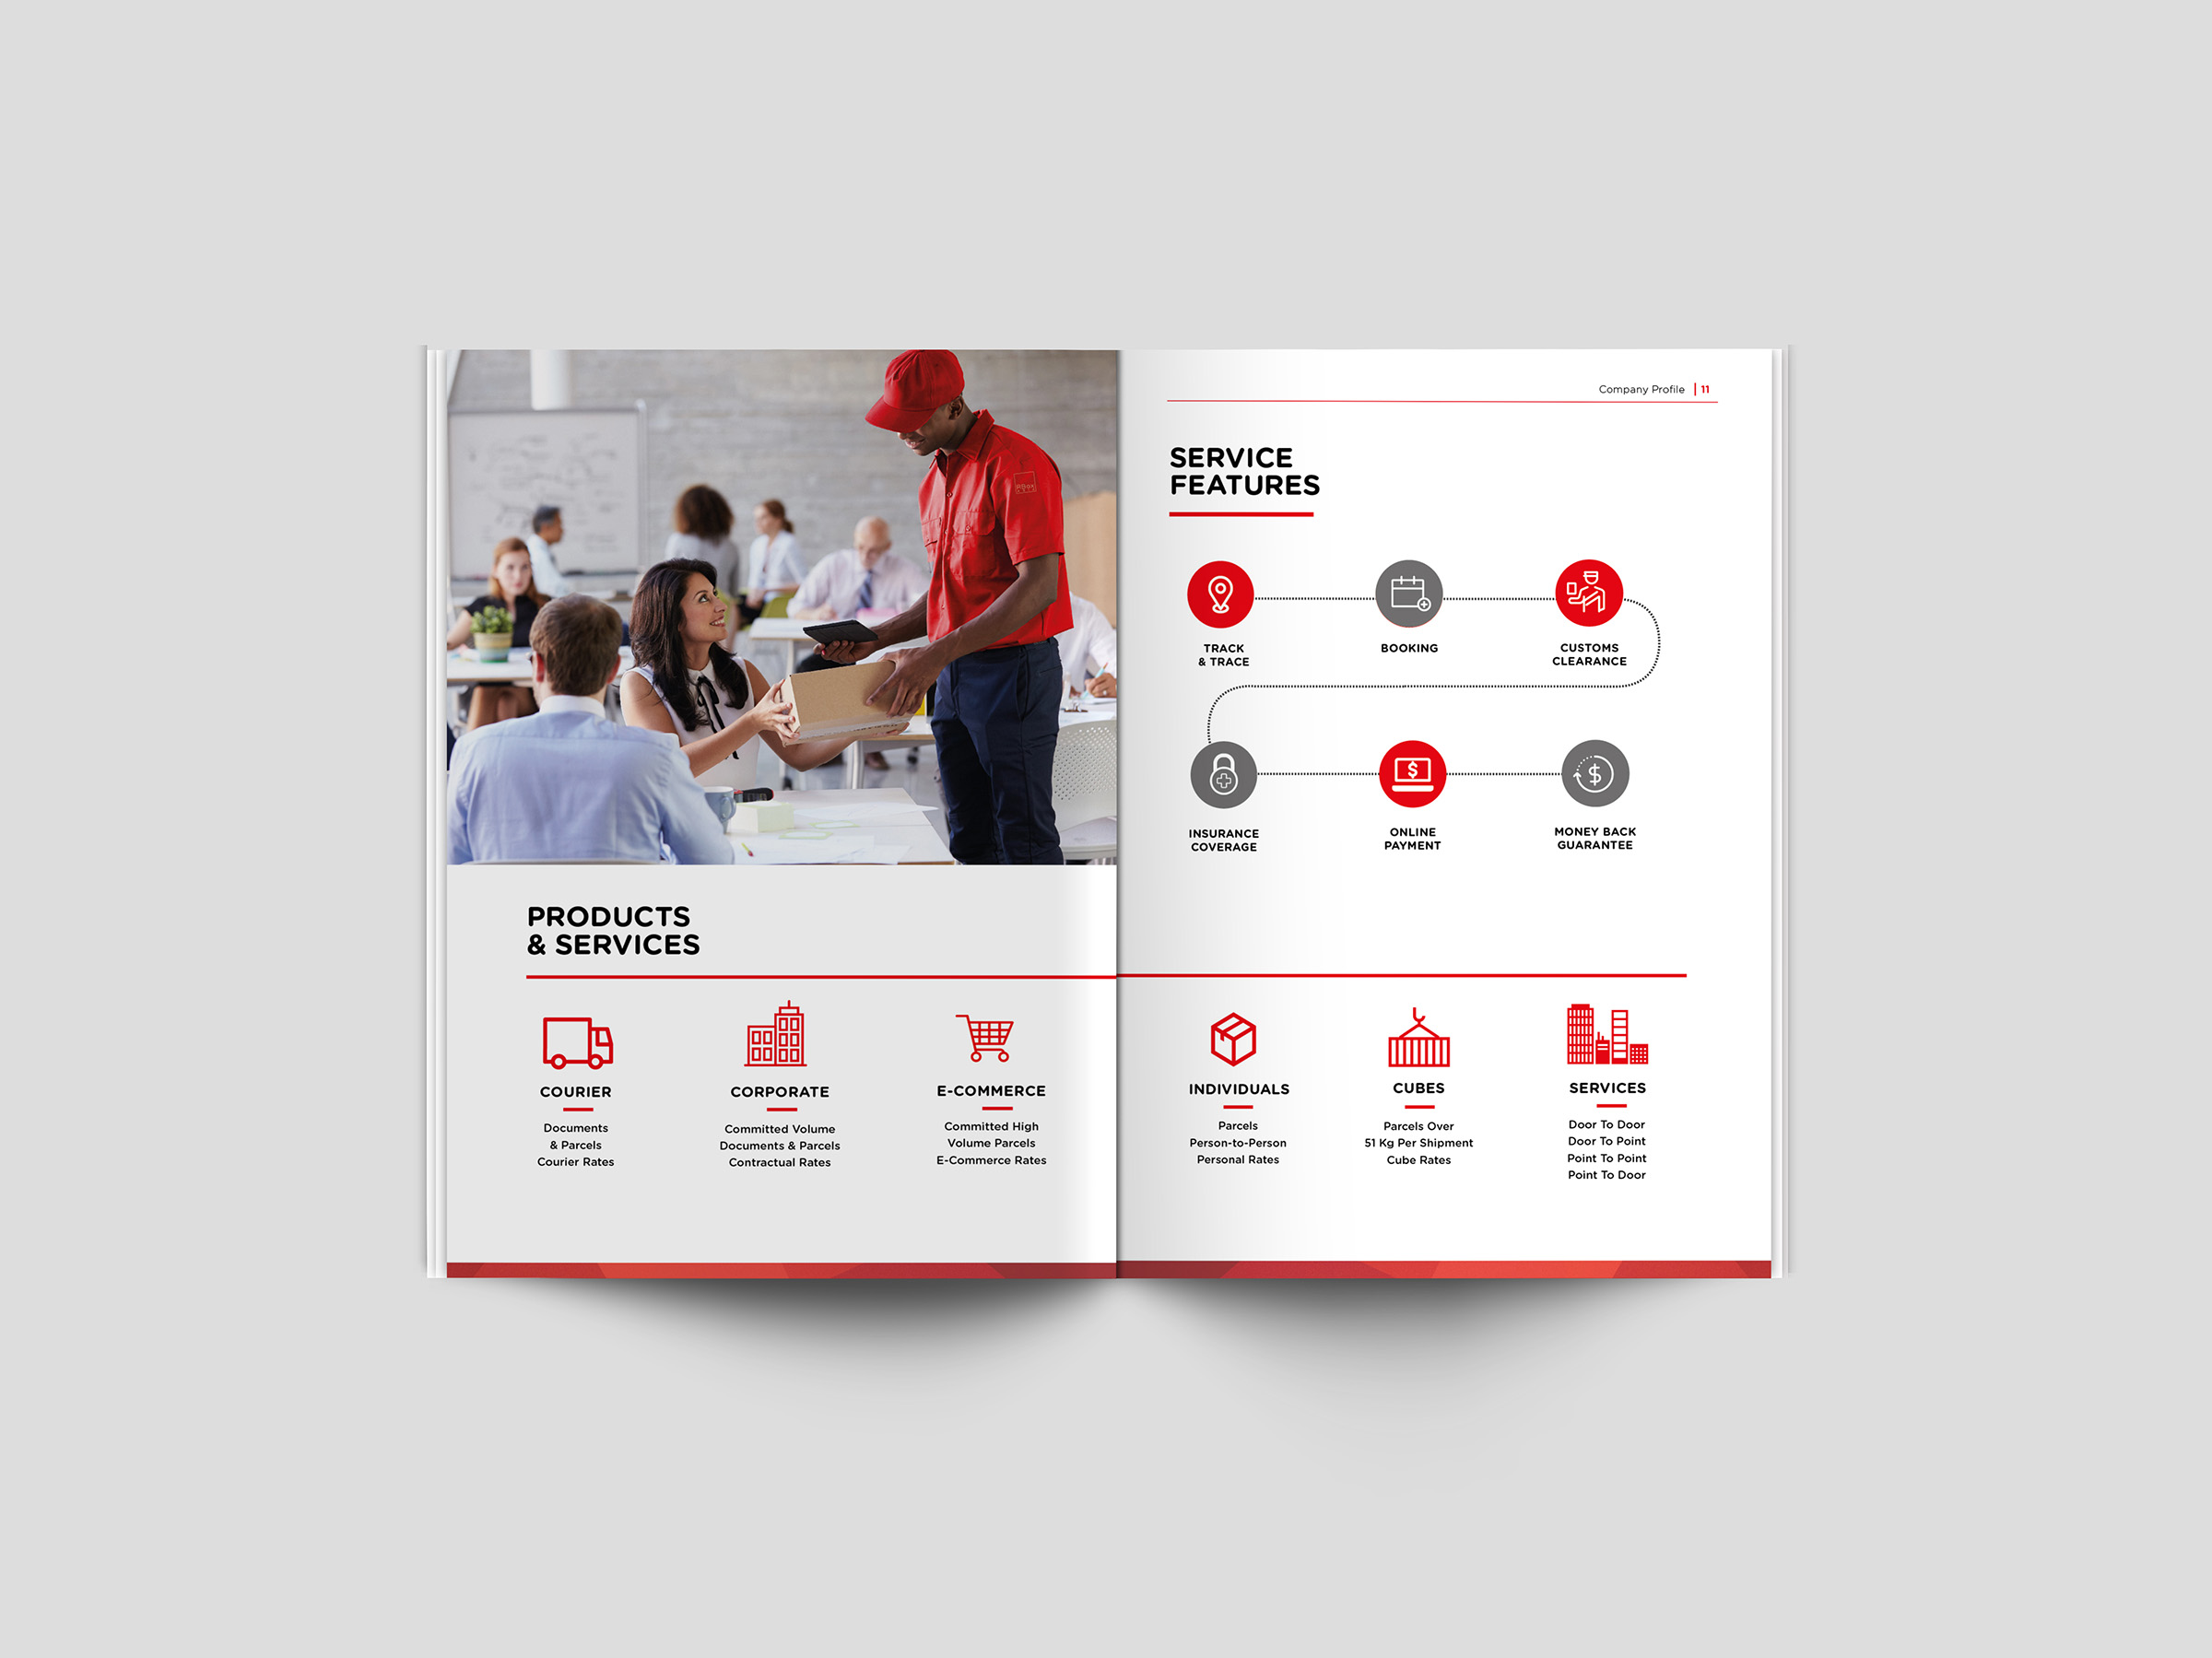 Rbox-AirAsia-Company-profile-design-layout-page-infographics-copywriting-resized.jpg